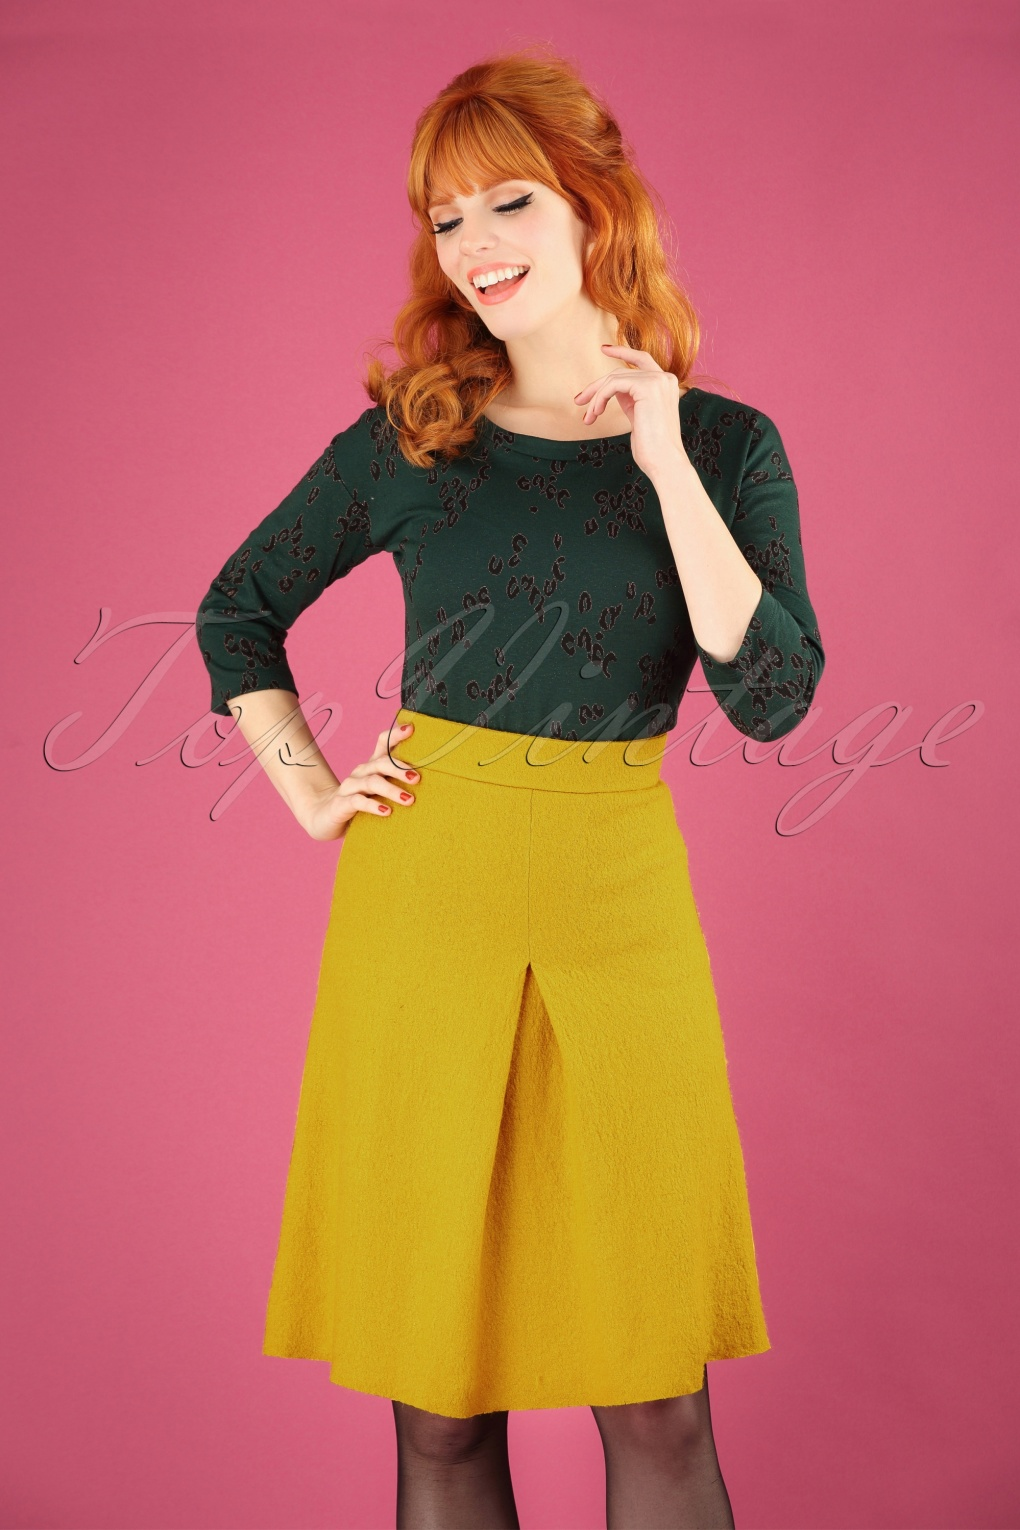 1960s Style Dresses, Clothing, Shoes UK 60s Finette Wool Skirt in Antique Moss £35.23 AT vintagedancer.com